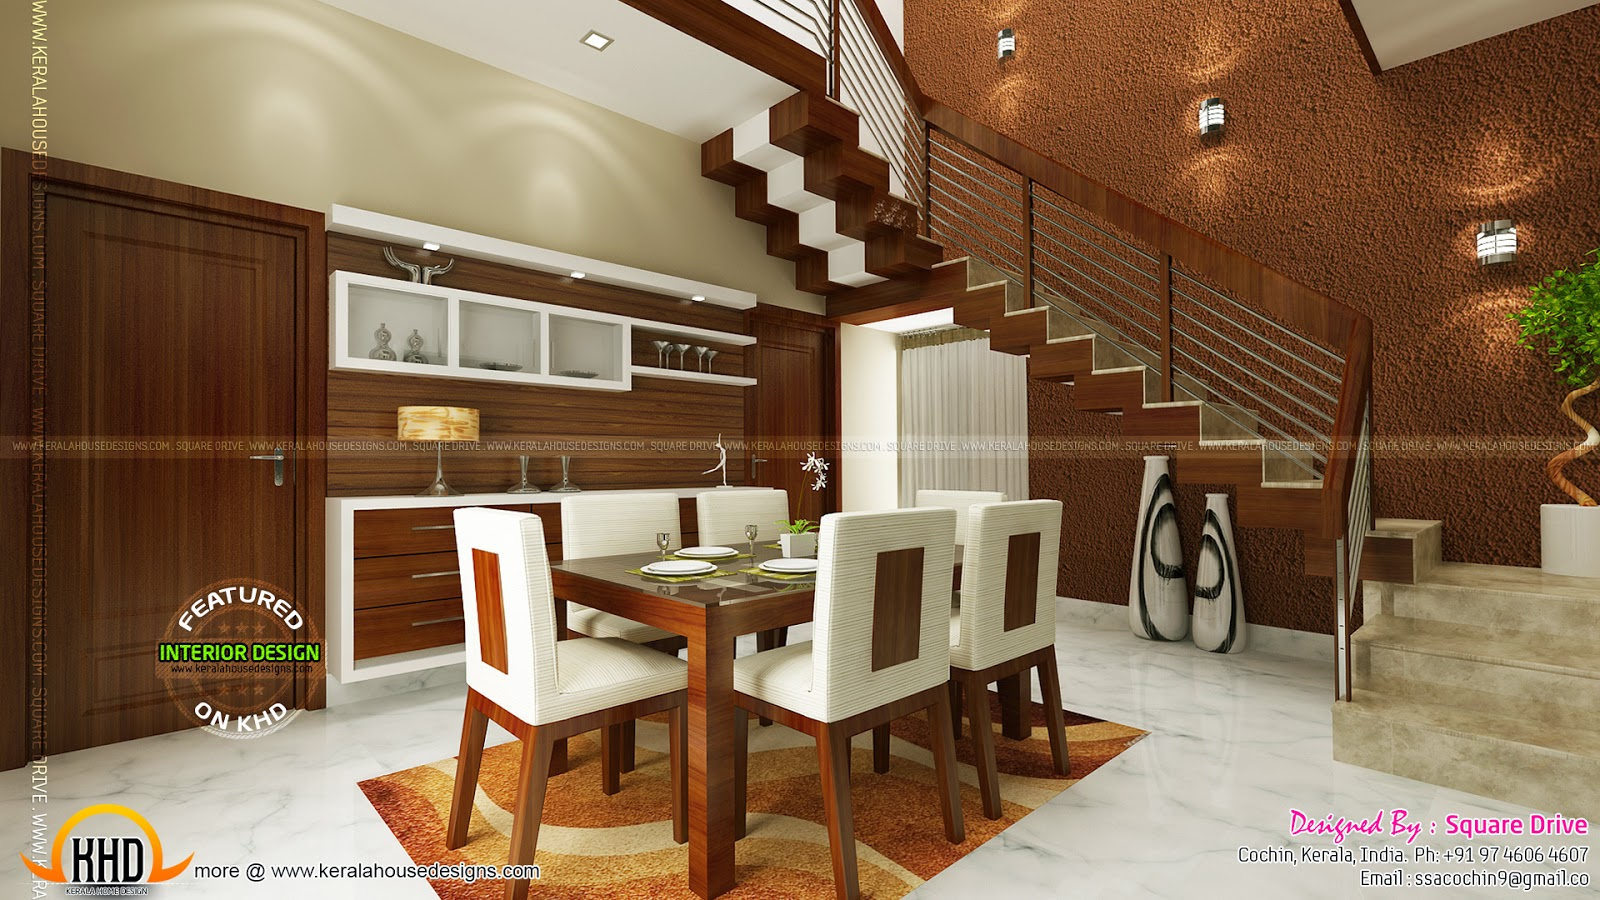 Cochin interior design kerala home design and floor plans for Dining home design